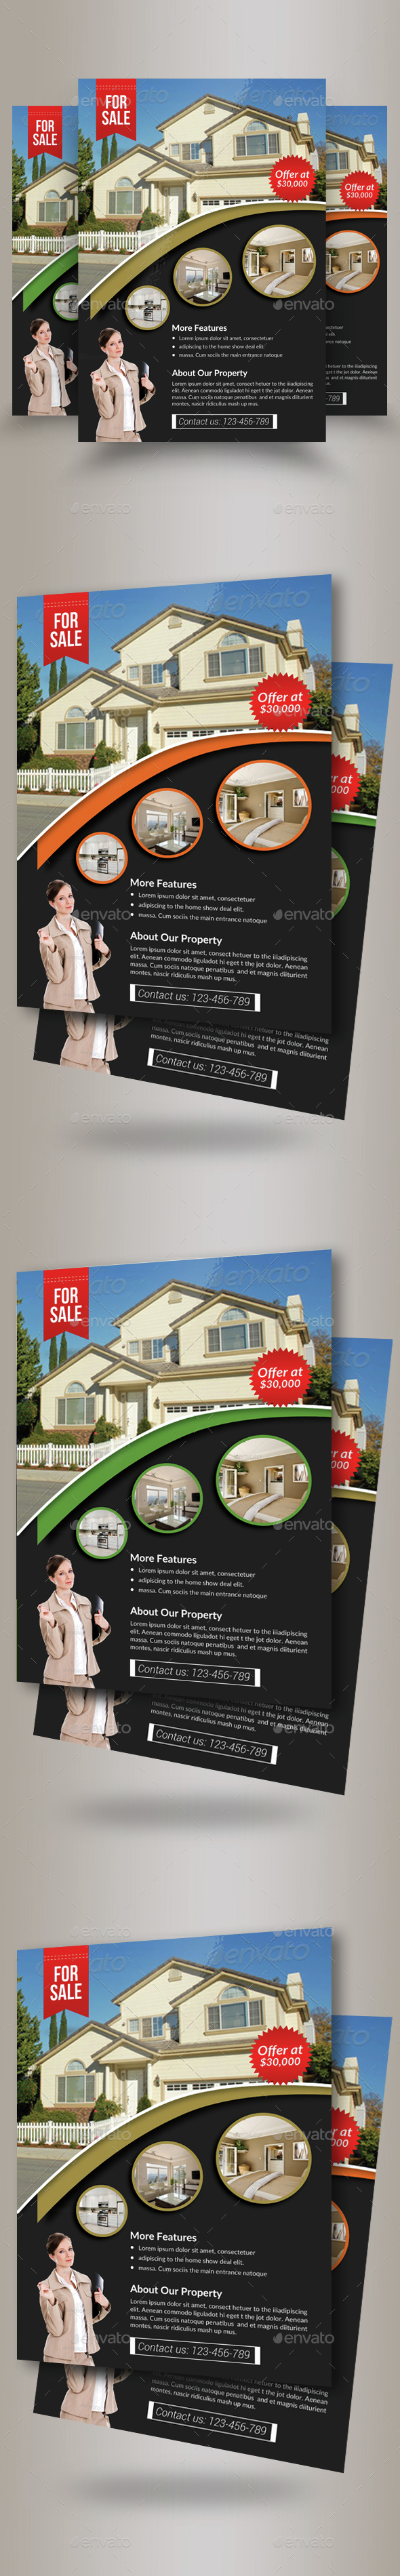 Real Estate Agency PSD Flyer Template